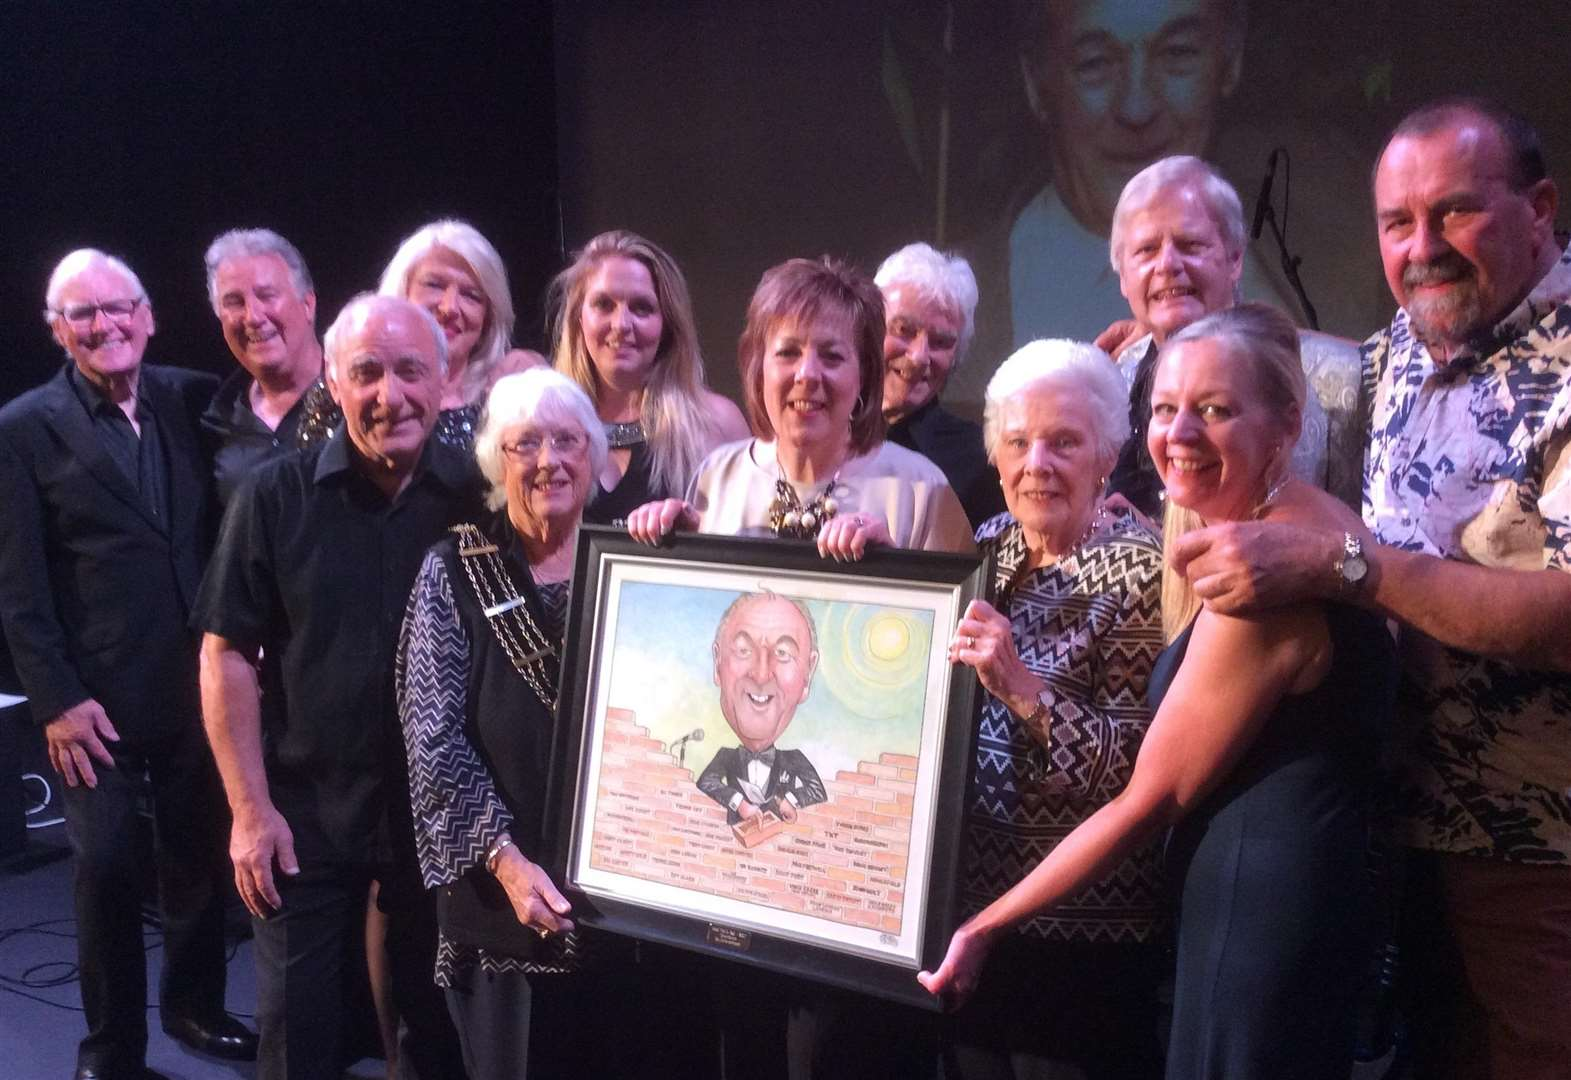 Caricature presented for Grantham's much loved music show promoter Noel Wallis